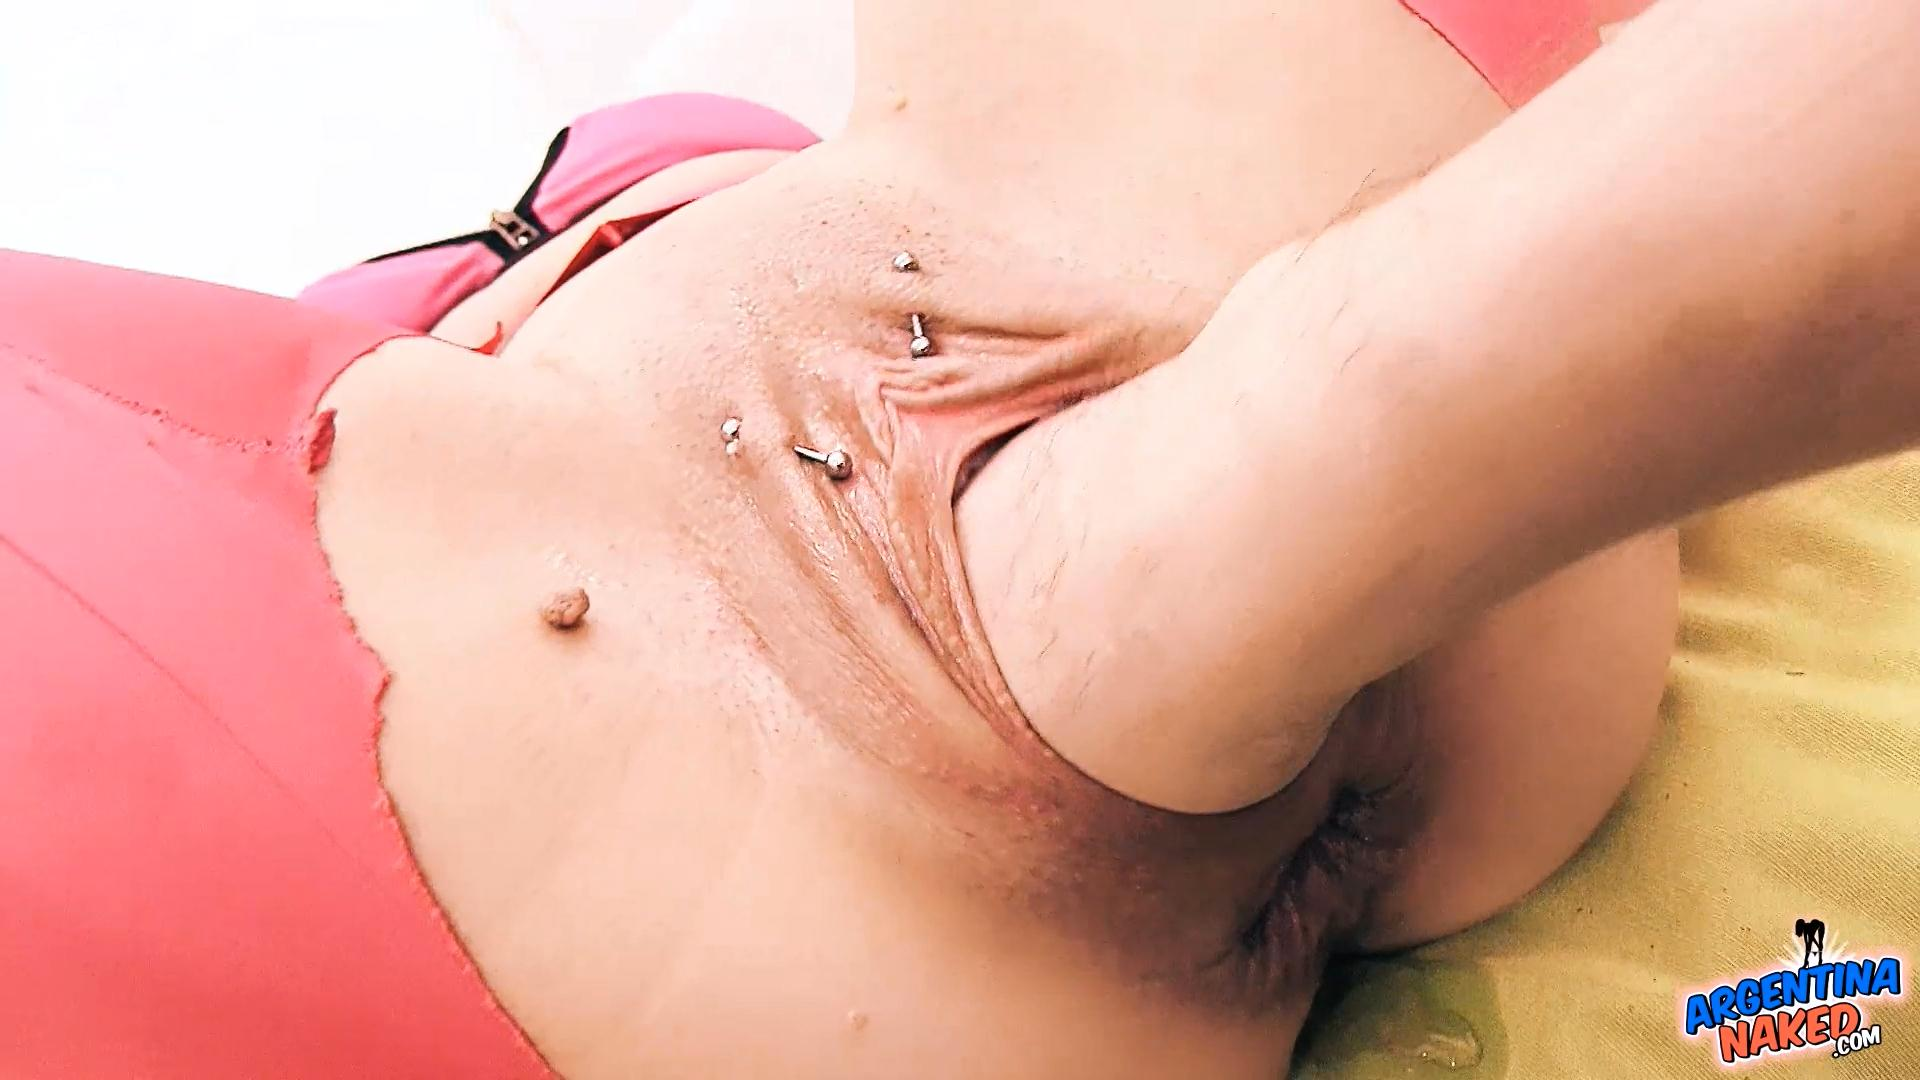 Anal destruction derby for sweety